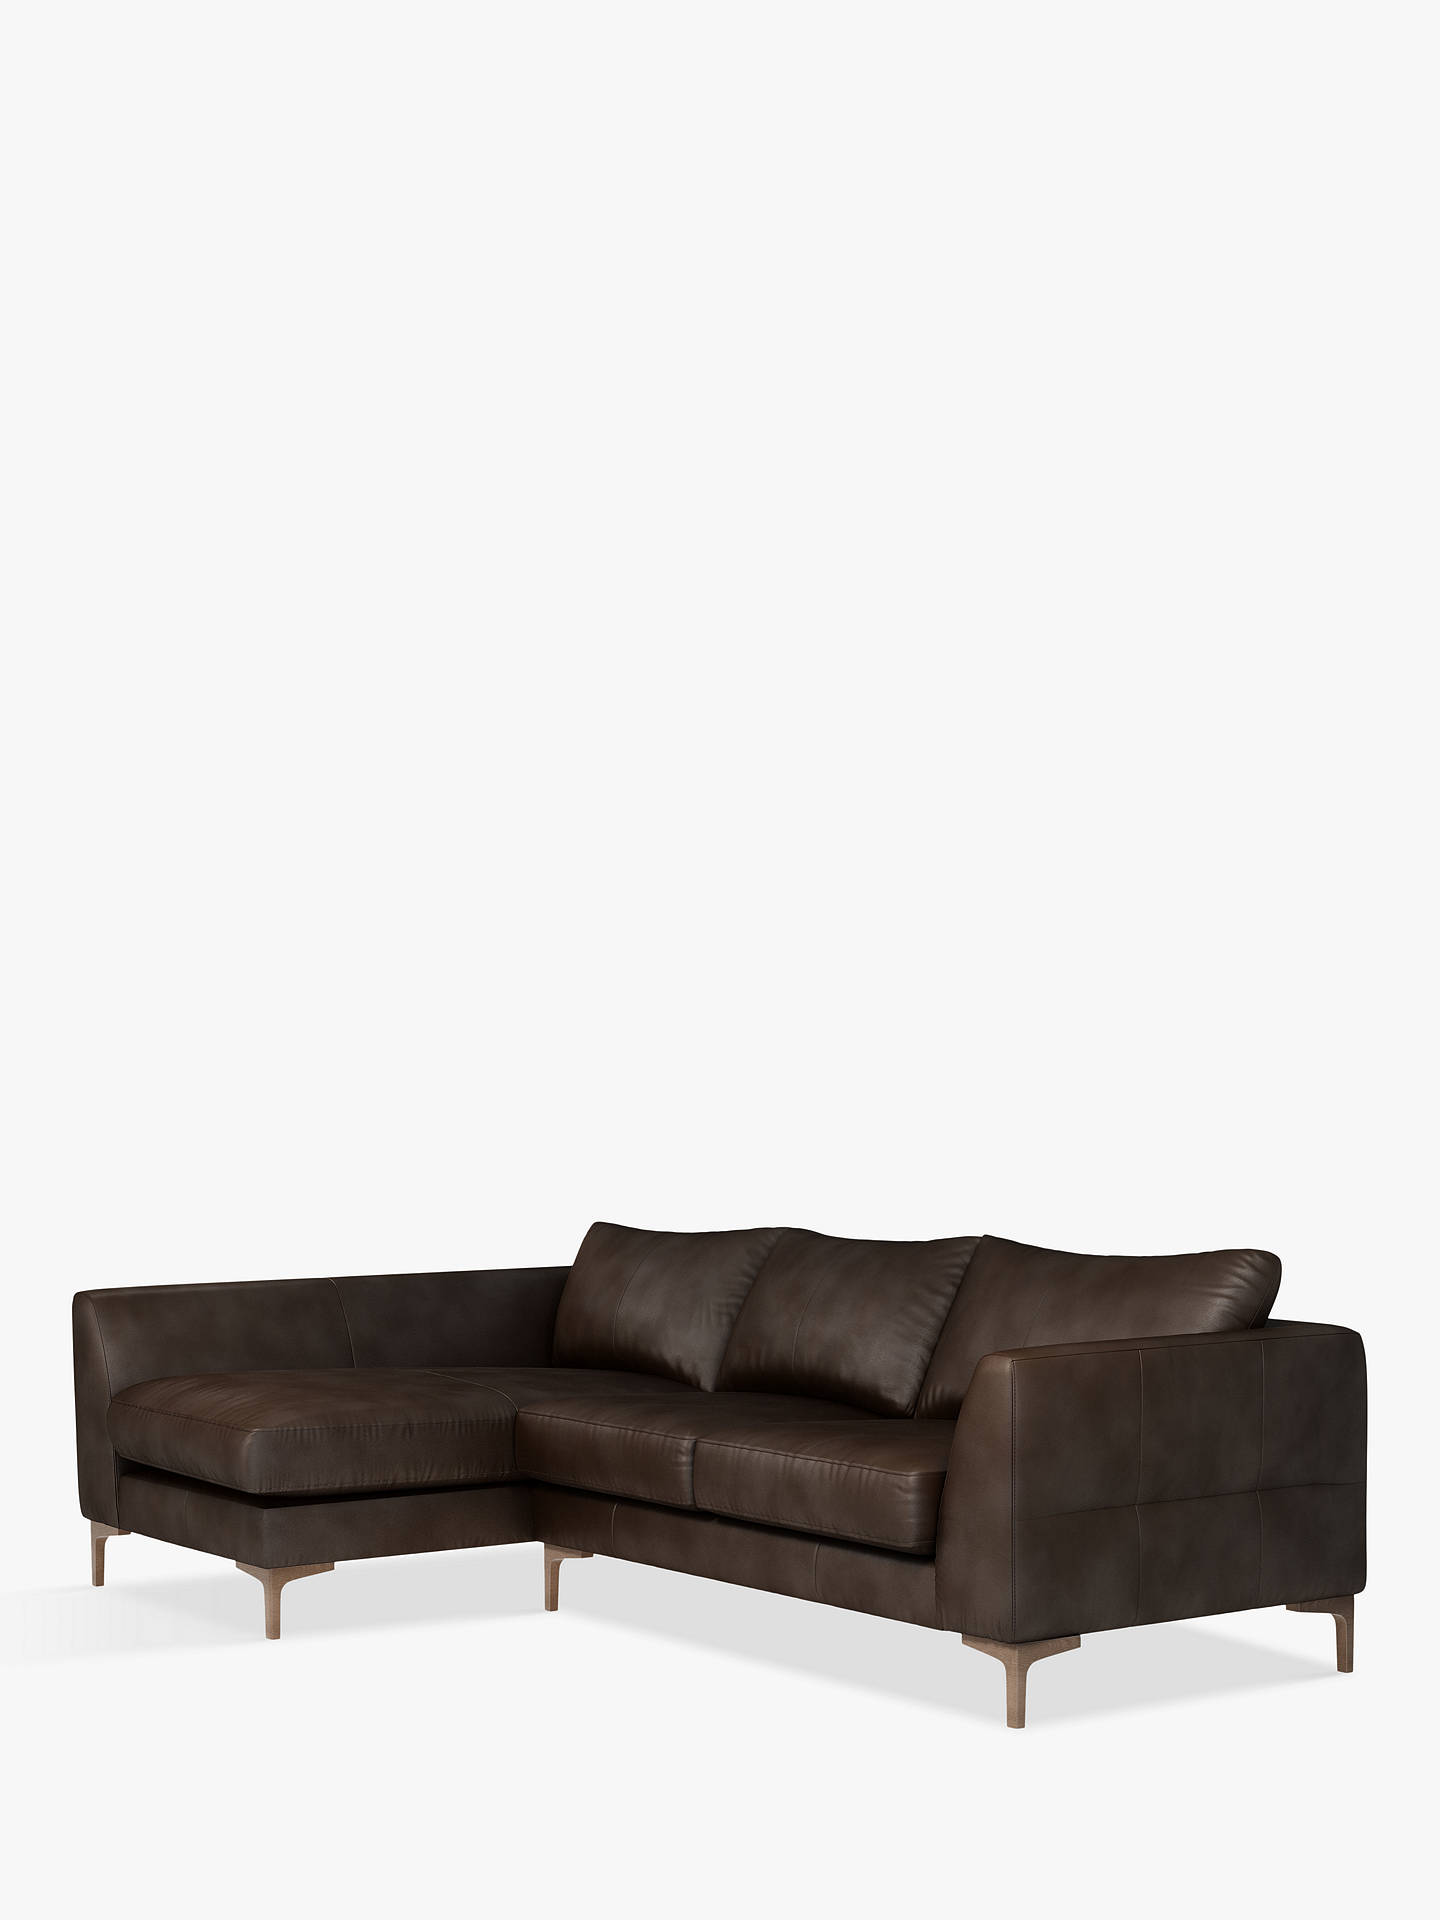 Buy John Lewis & Partners Belgrave LHF Chaise End Leather Sofa, Dark Leg, Nature Brown Online at johnlewis.com